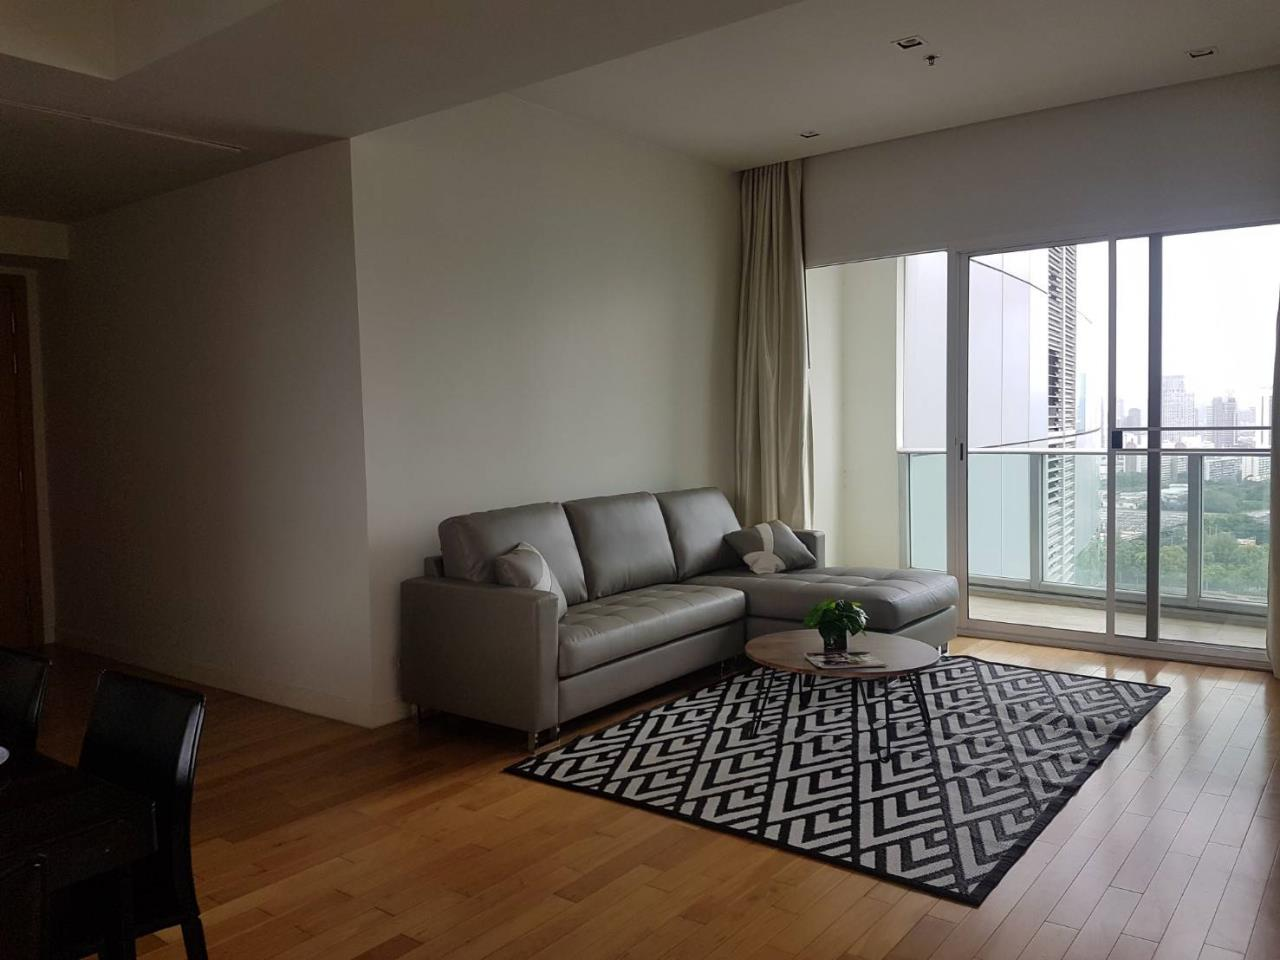 RE/MAX All Star Realty Agency's Millennium Residence for sale/rent (BTS Asoke) 1